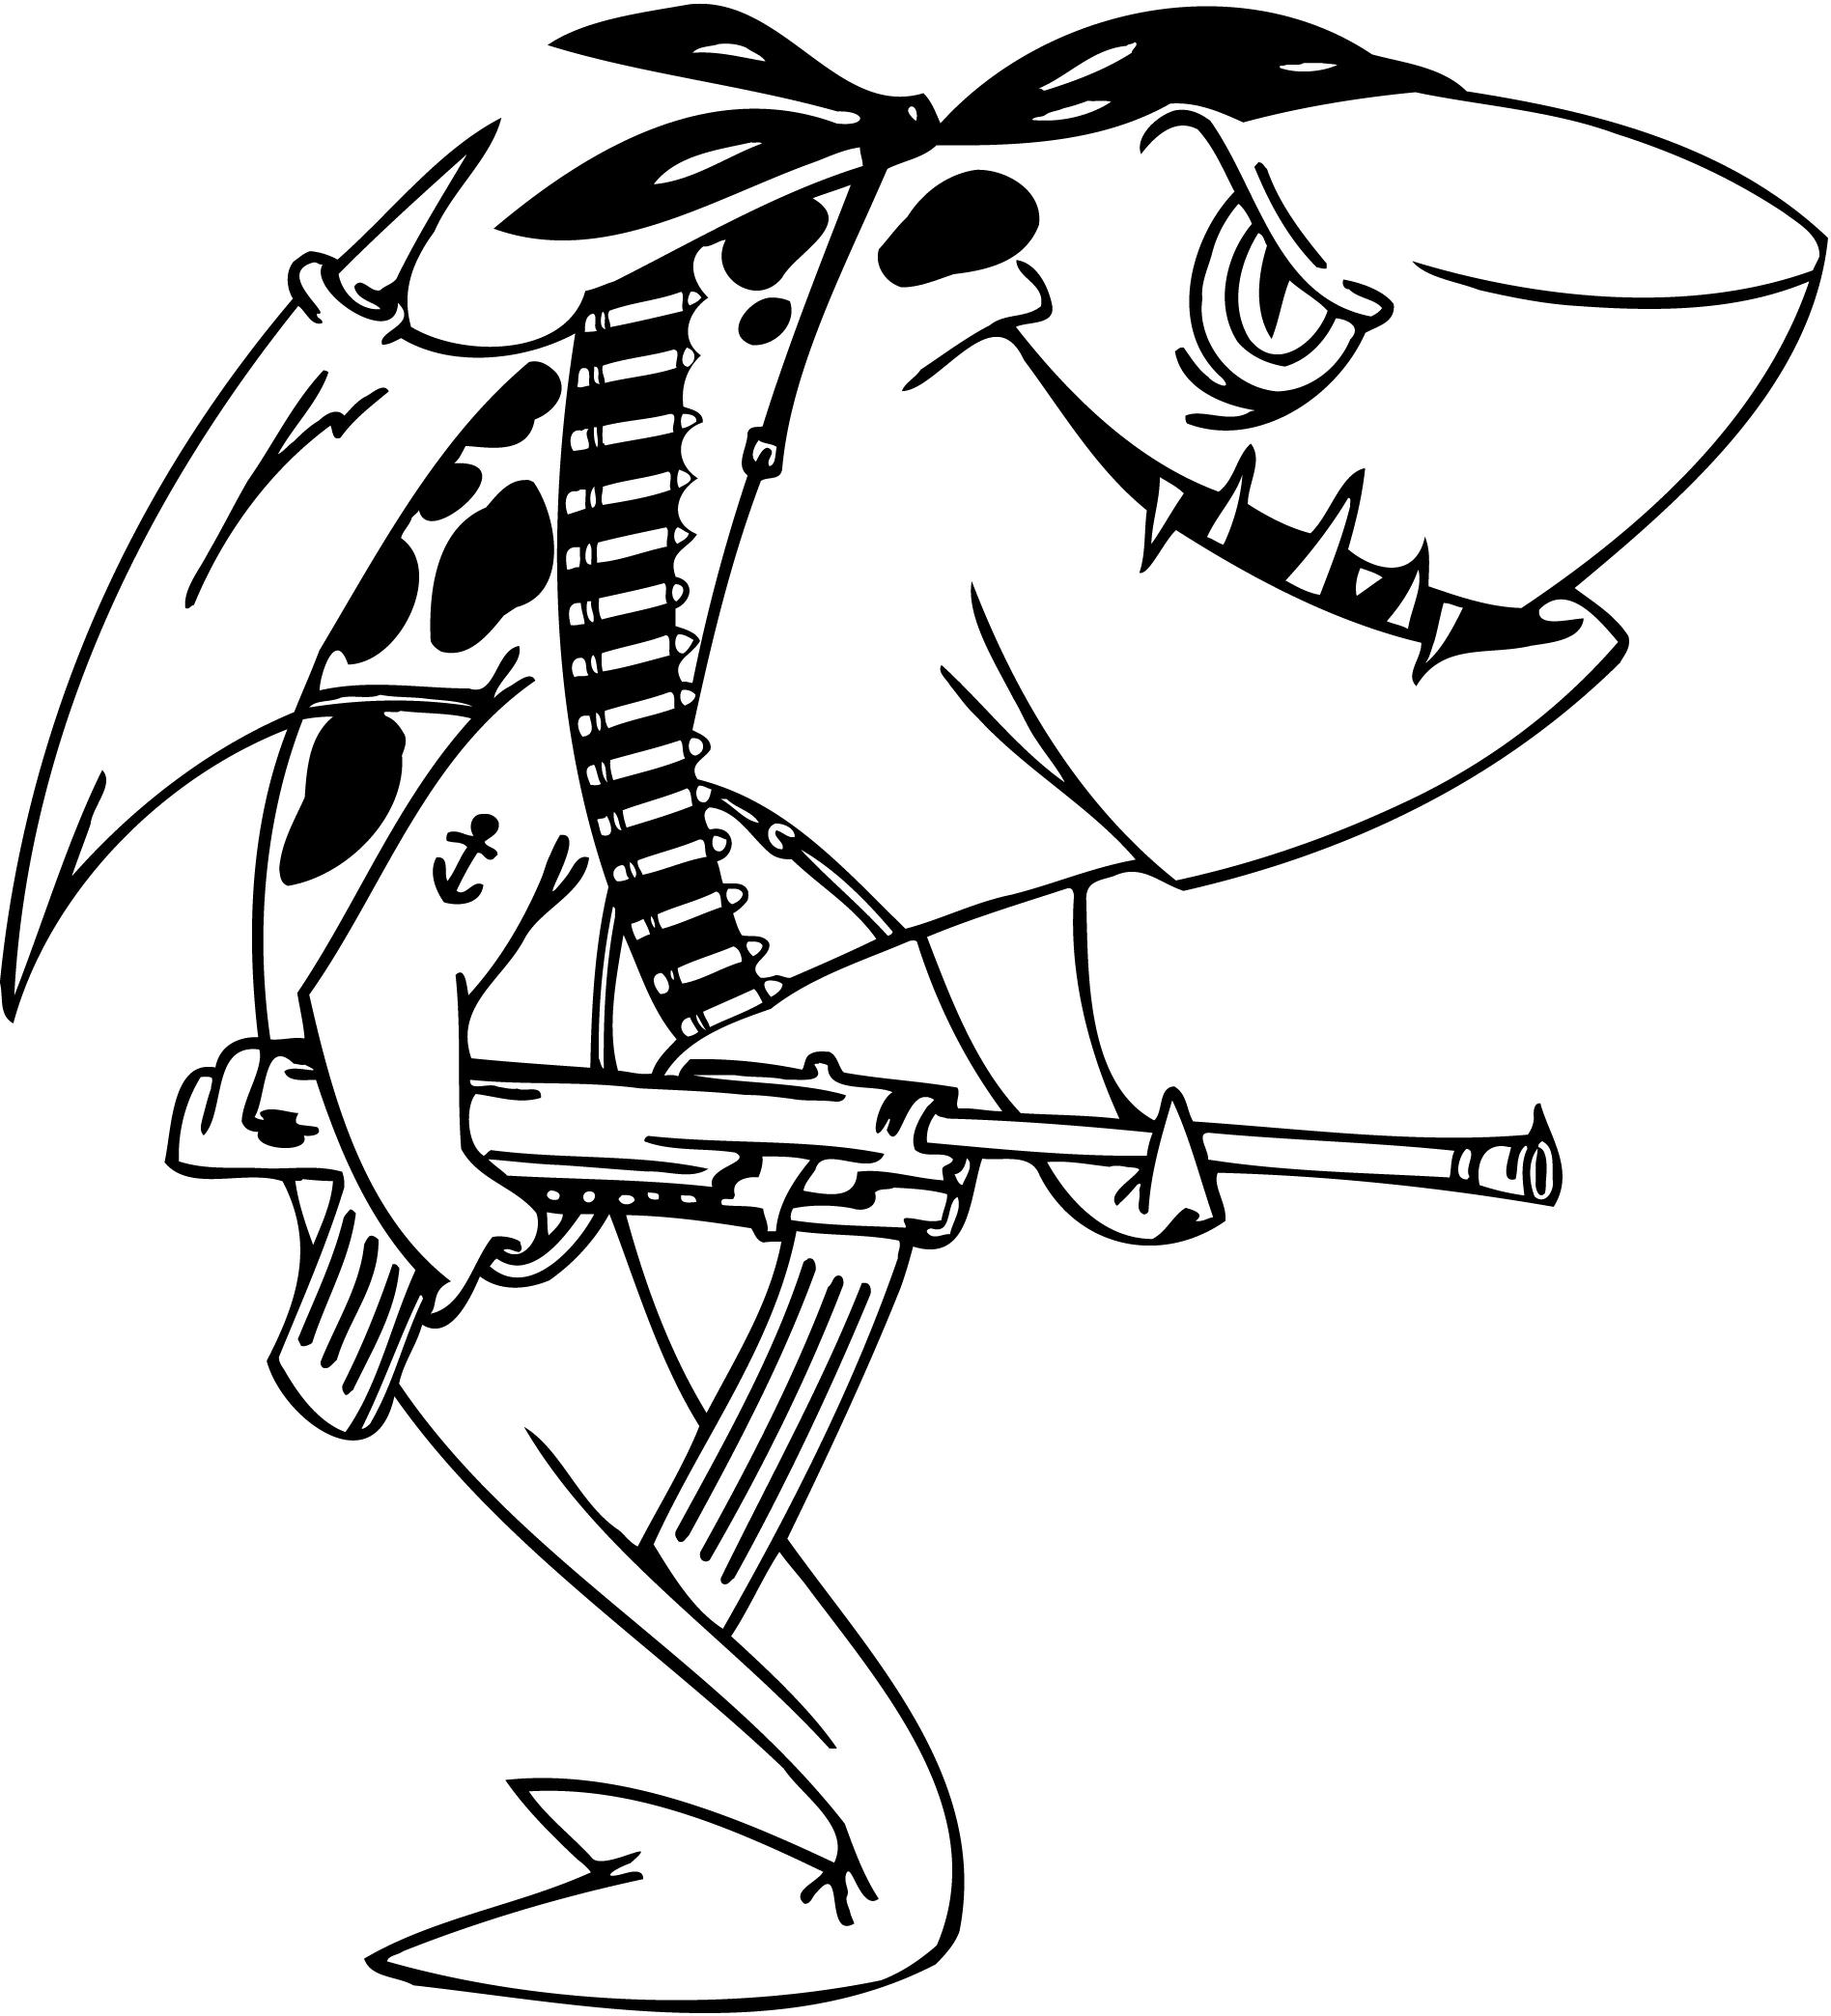 Clark The Shark Coloring Pages At Getcolorings